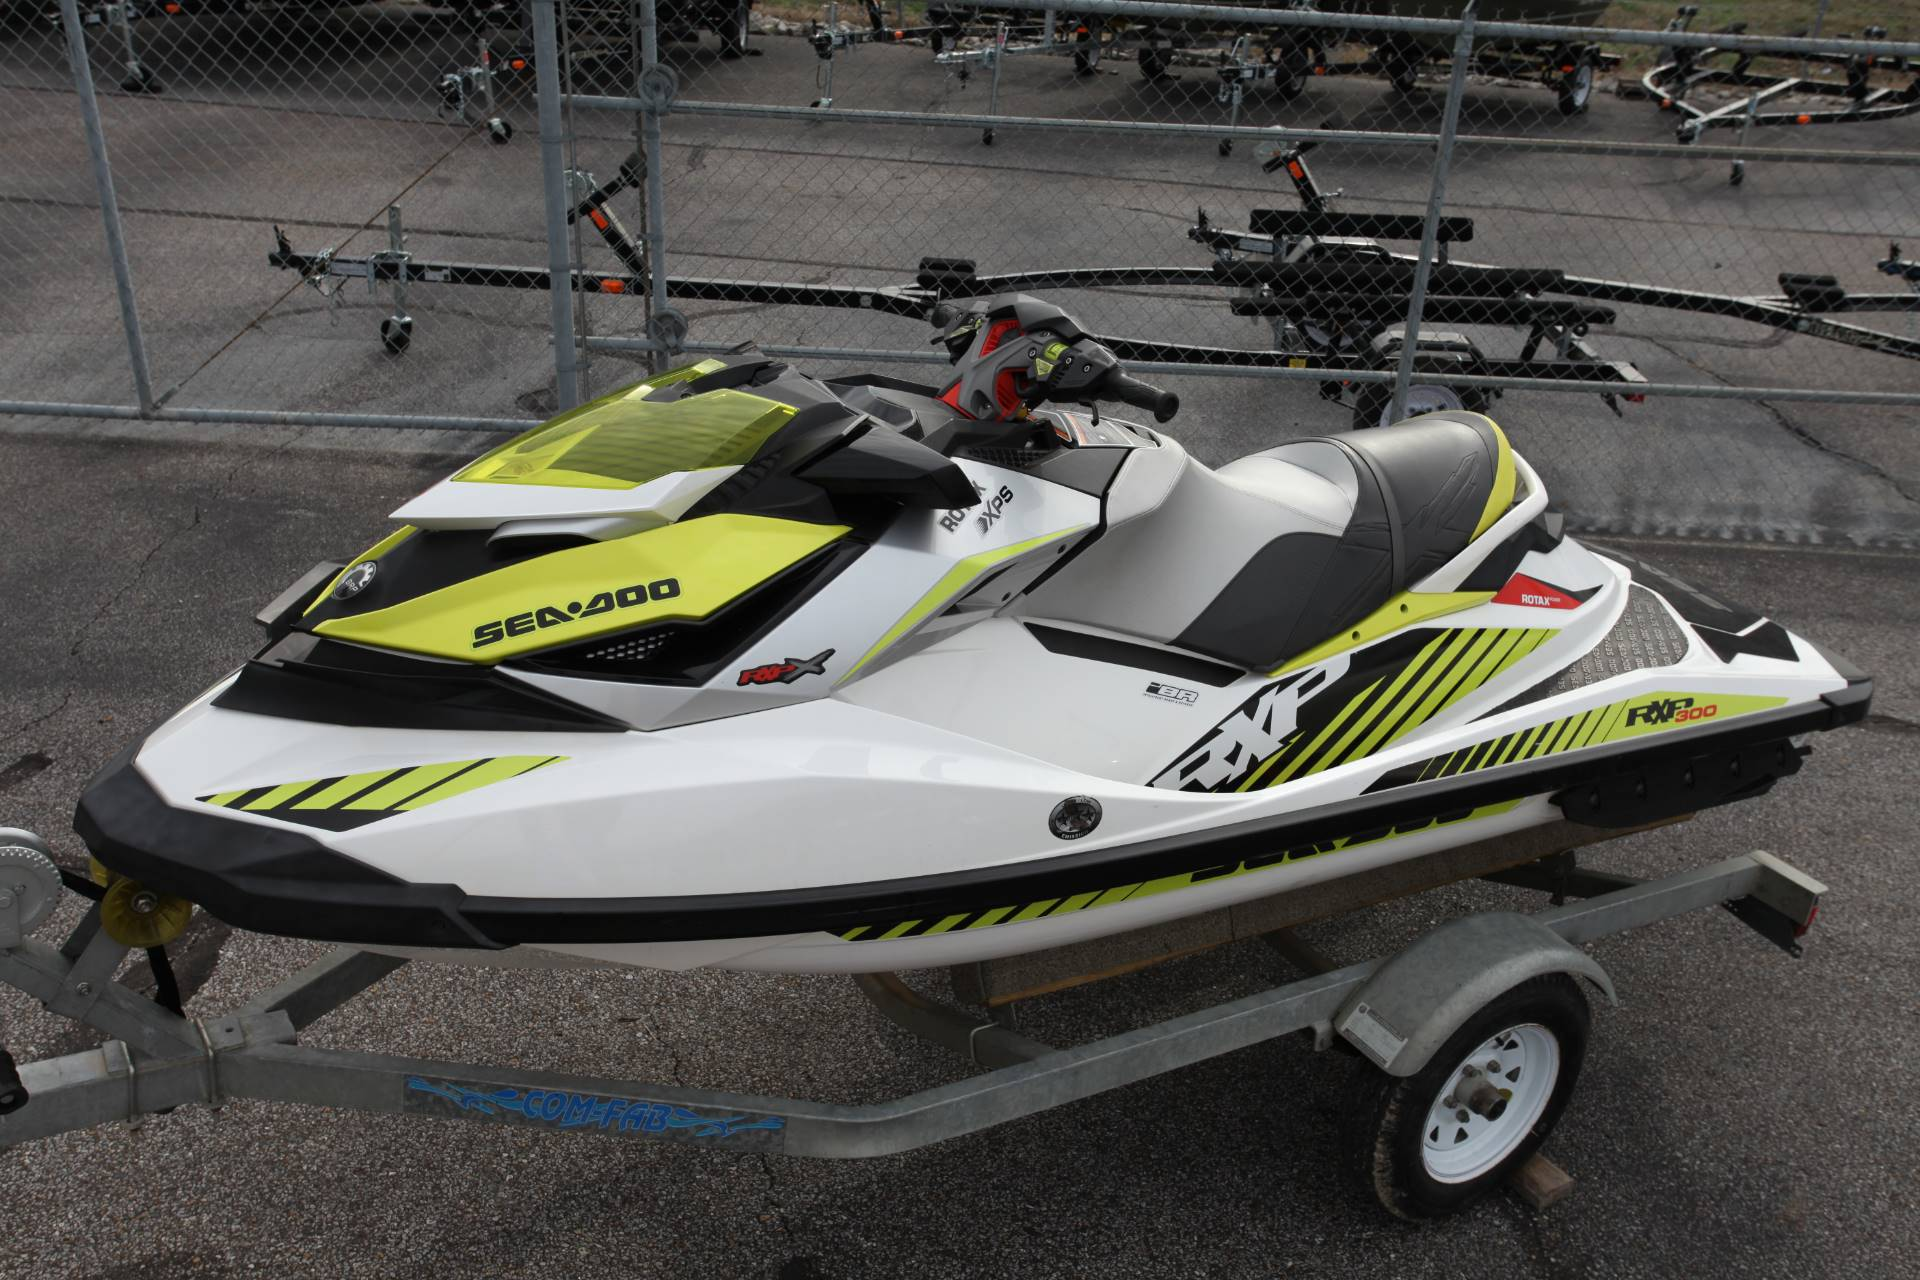 2017 Sea-Doo RXP-X 300 in Memphis, Tennessee - Photo 1